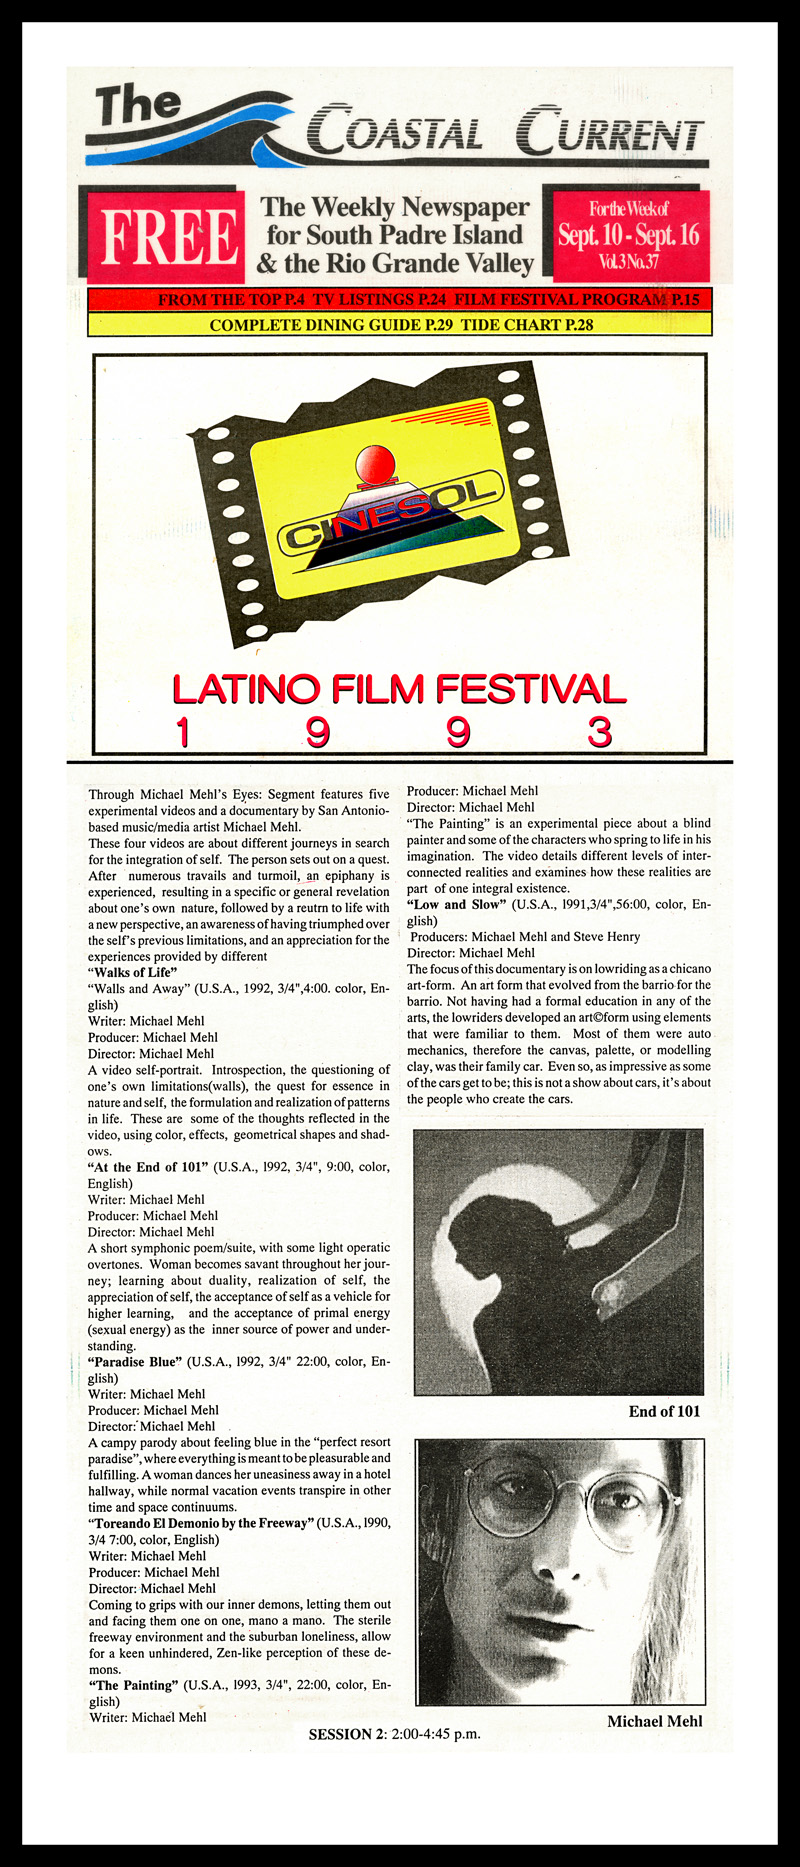 1993_Michael-Mehl_The-Coastal-Current_Video-Screenings_CineSol-Latino-Film-Festival_South-Padre-Island